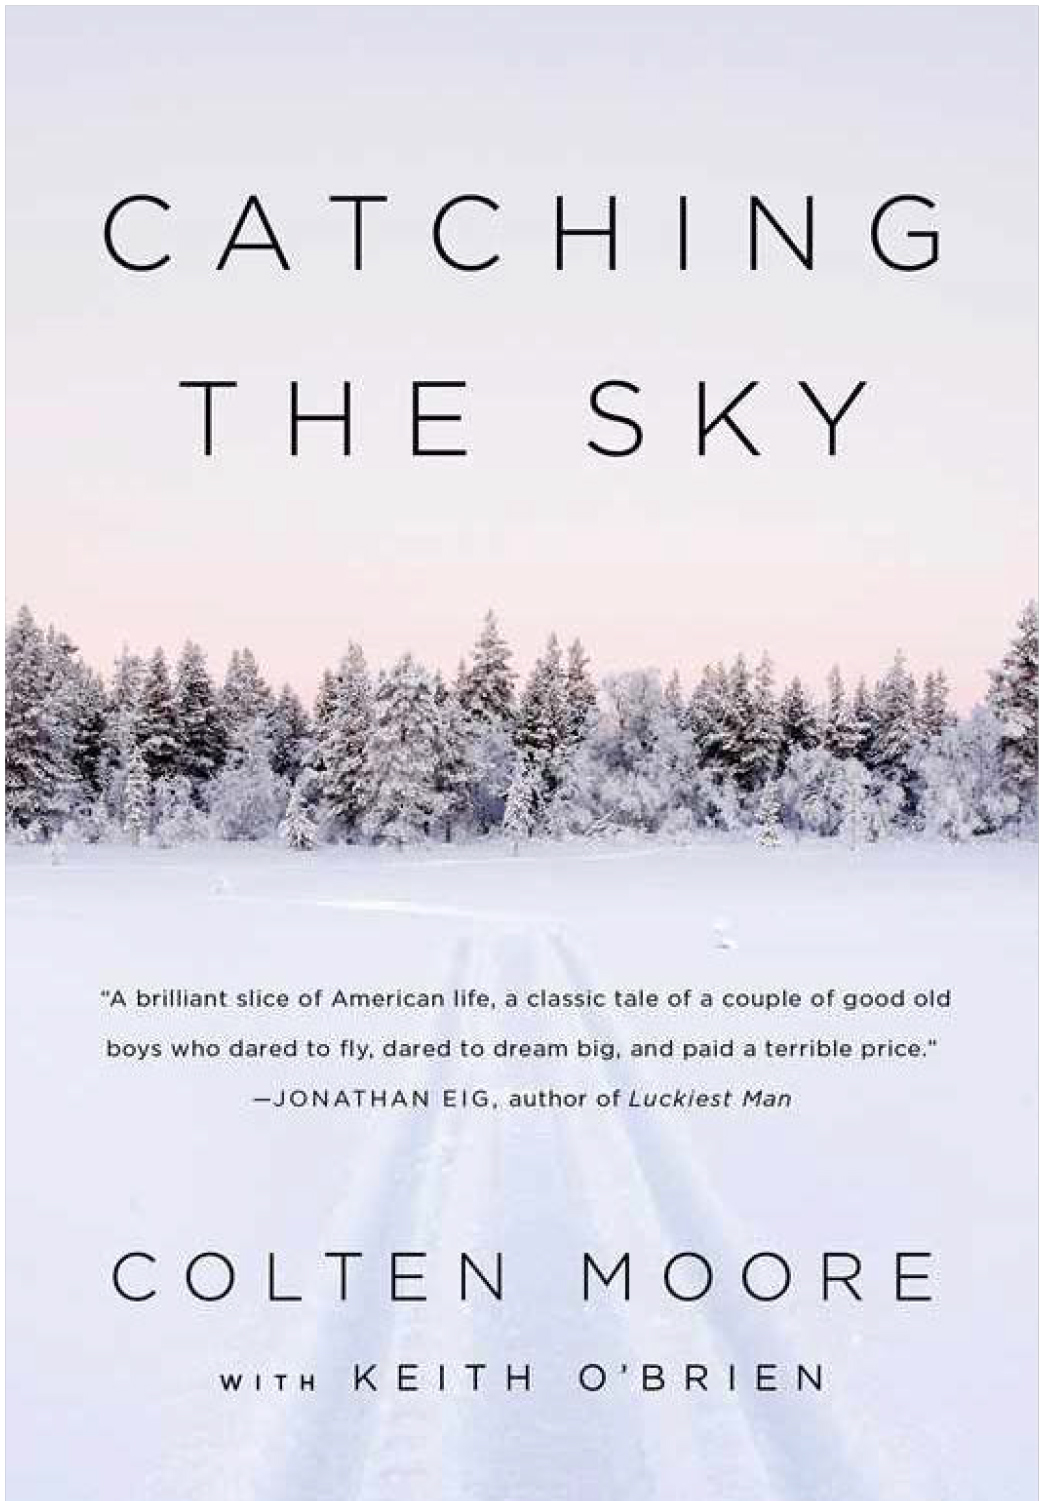 |  Catching the Sky  | Colten Moore with Keith O'Brien |